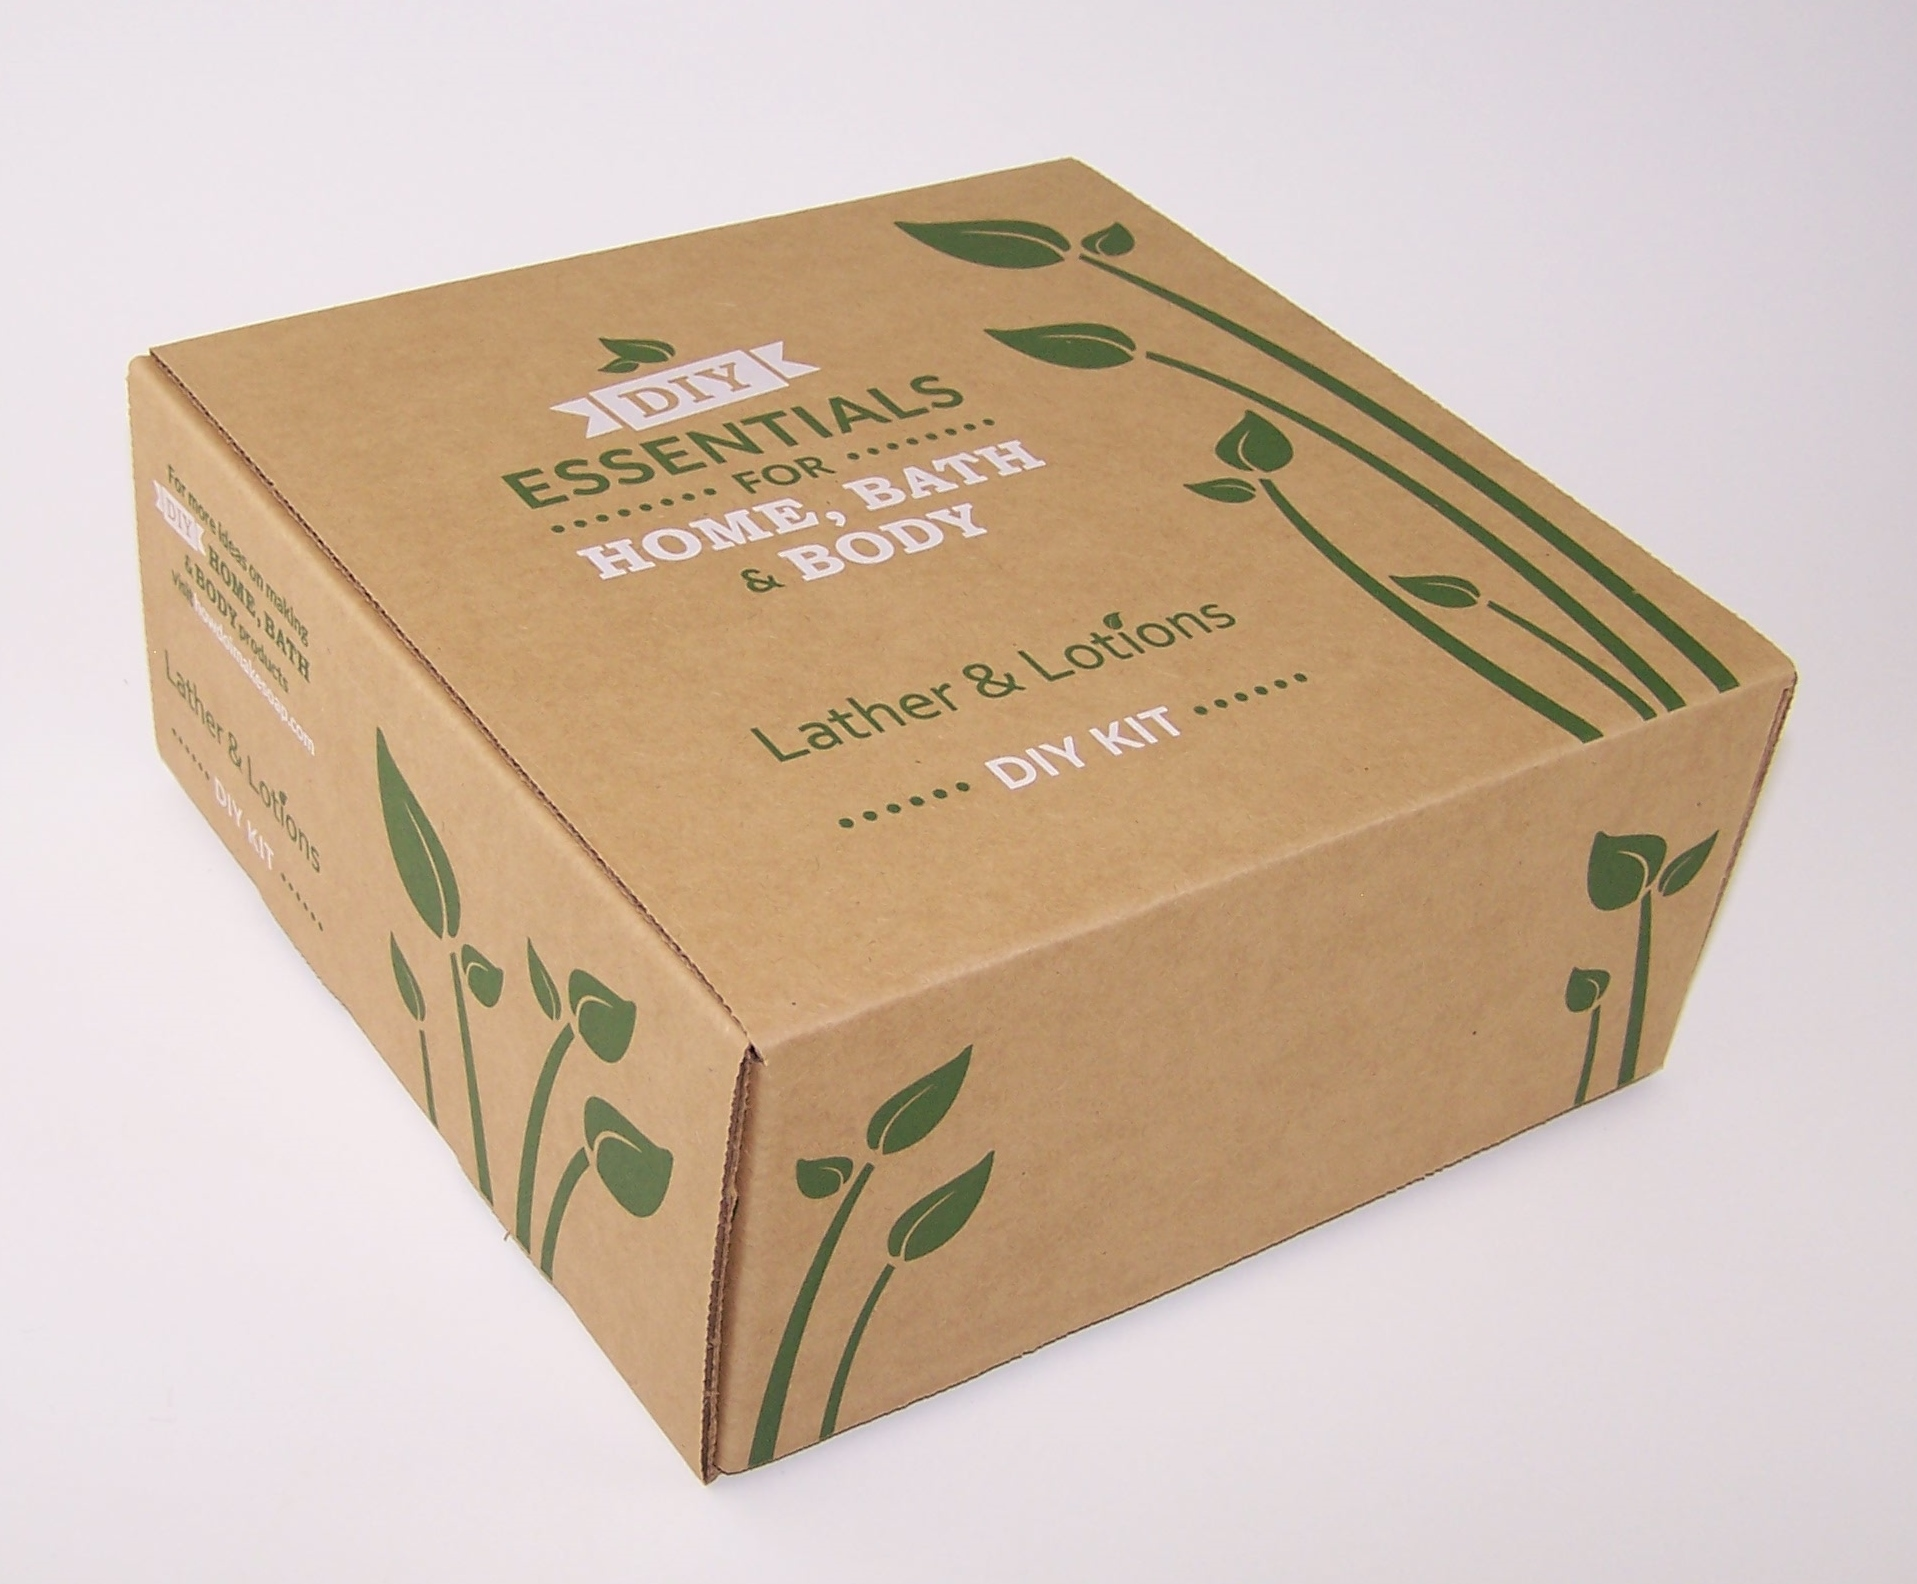 Hinged lid Corrugated Paper Box with kraft paper